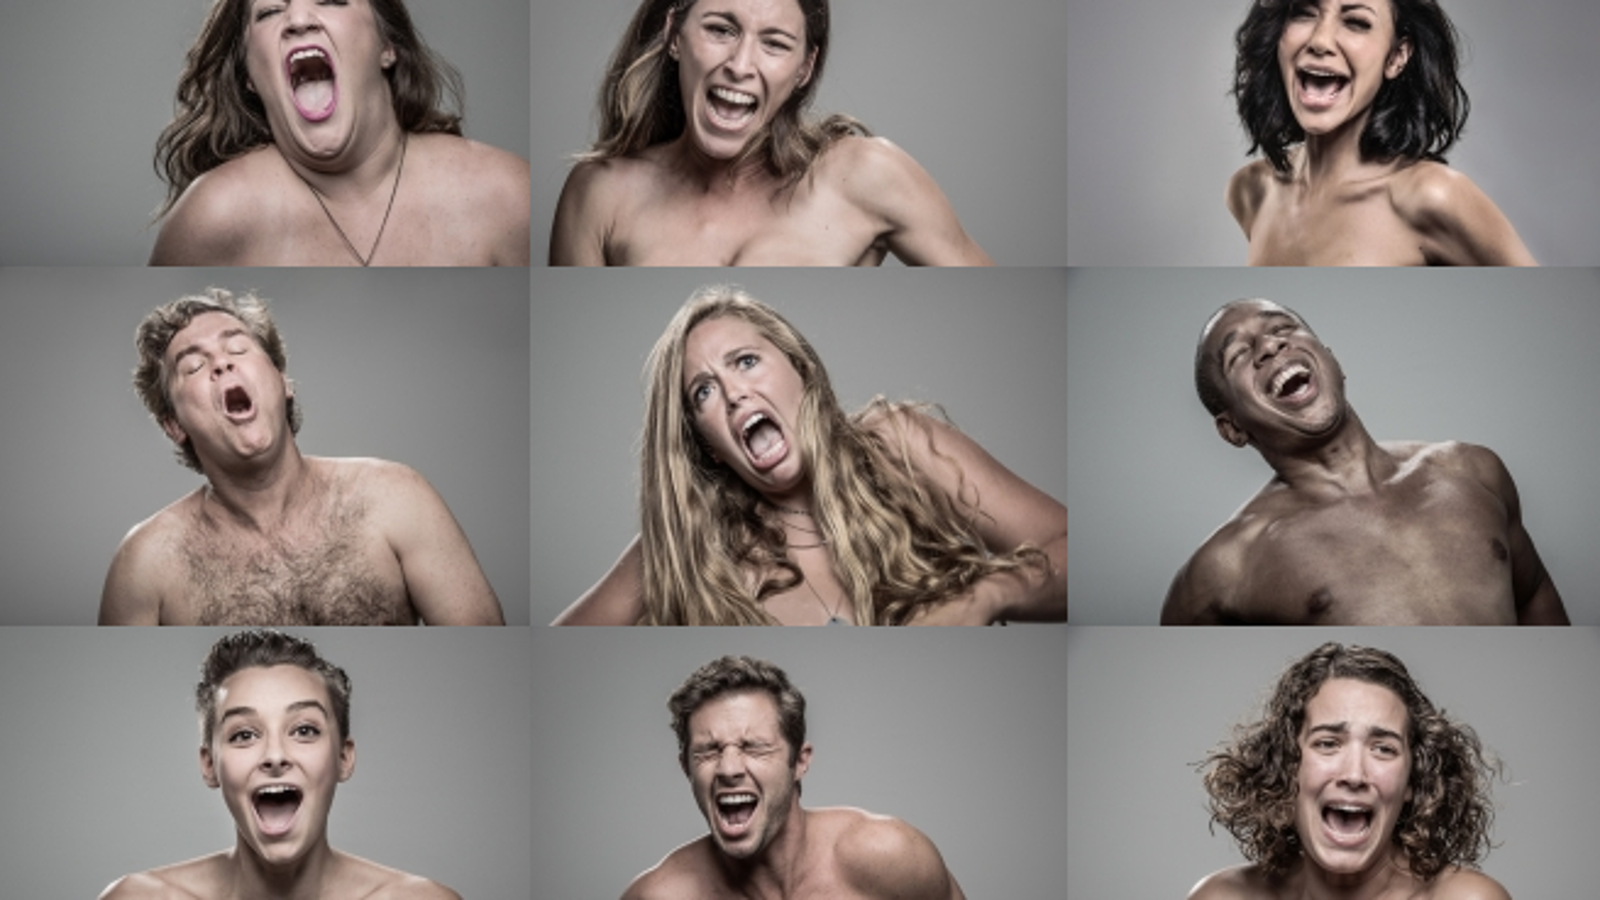 Slow motion video captures people's faces as they get hit with tasers